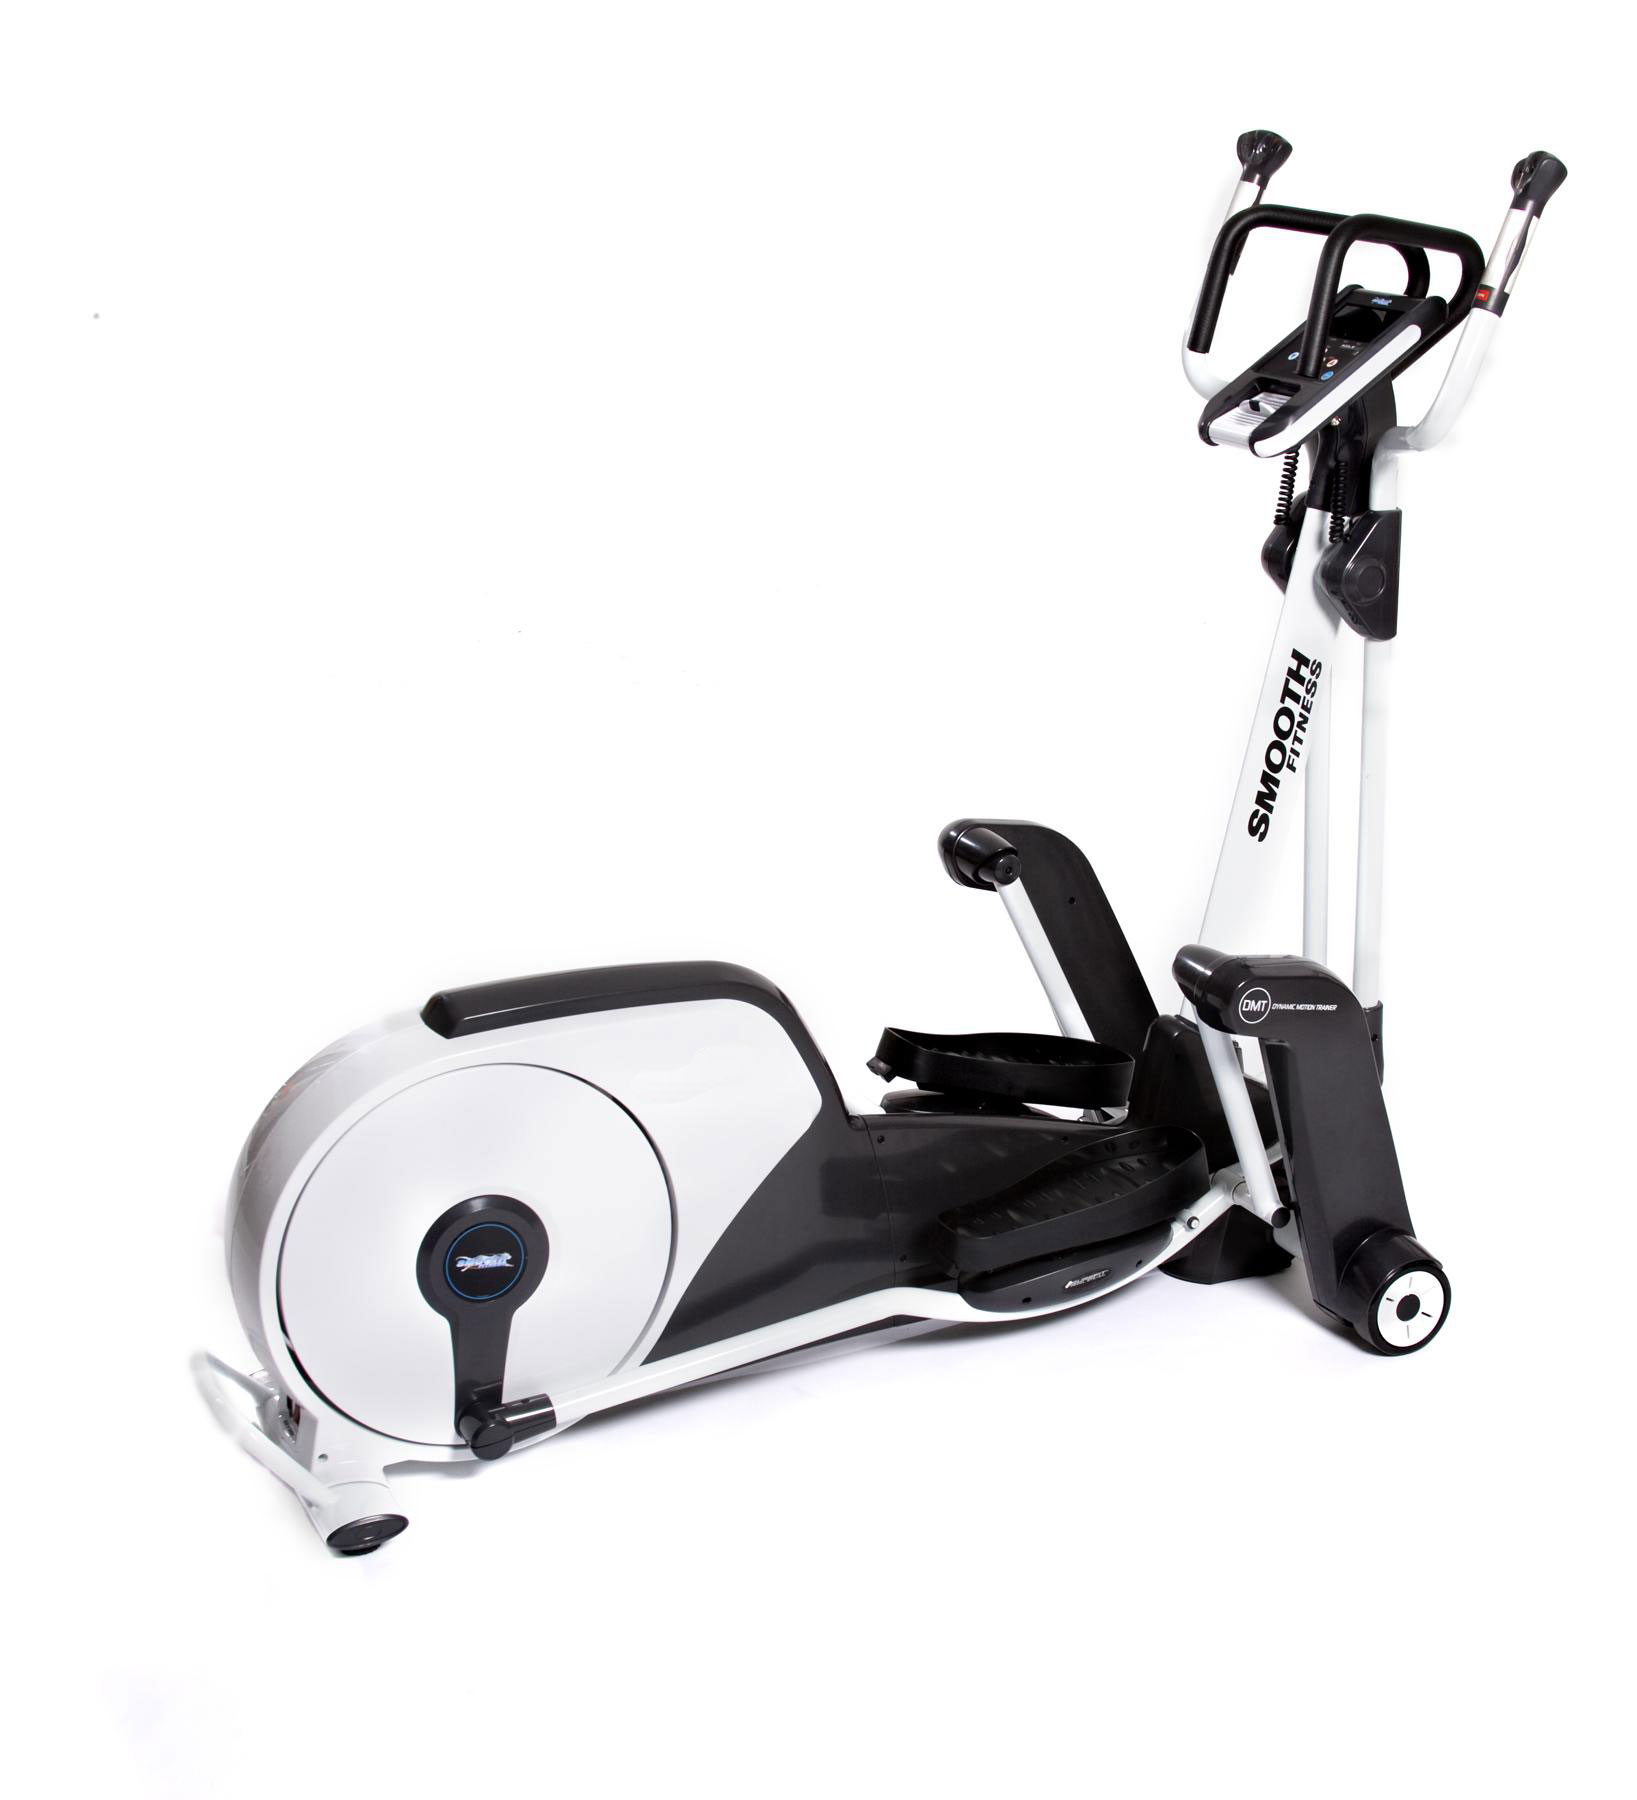 Smooth Fitness Agile DMT X2 Elliptical